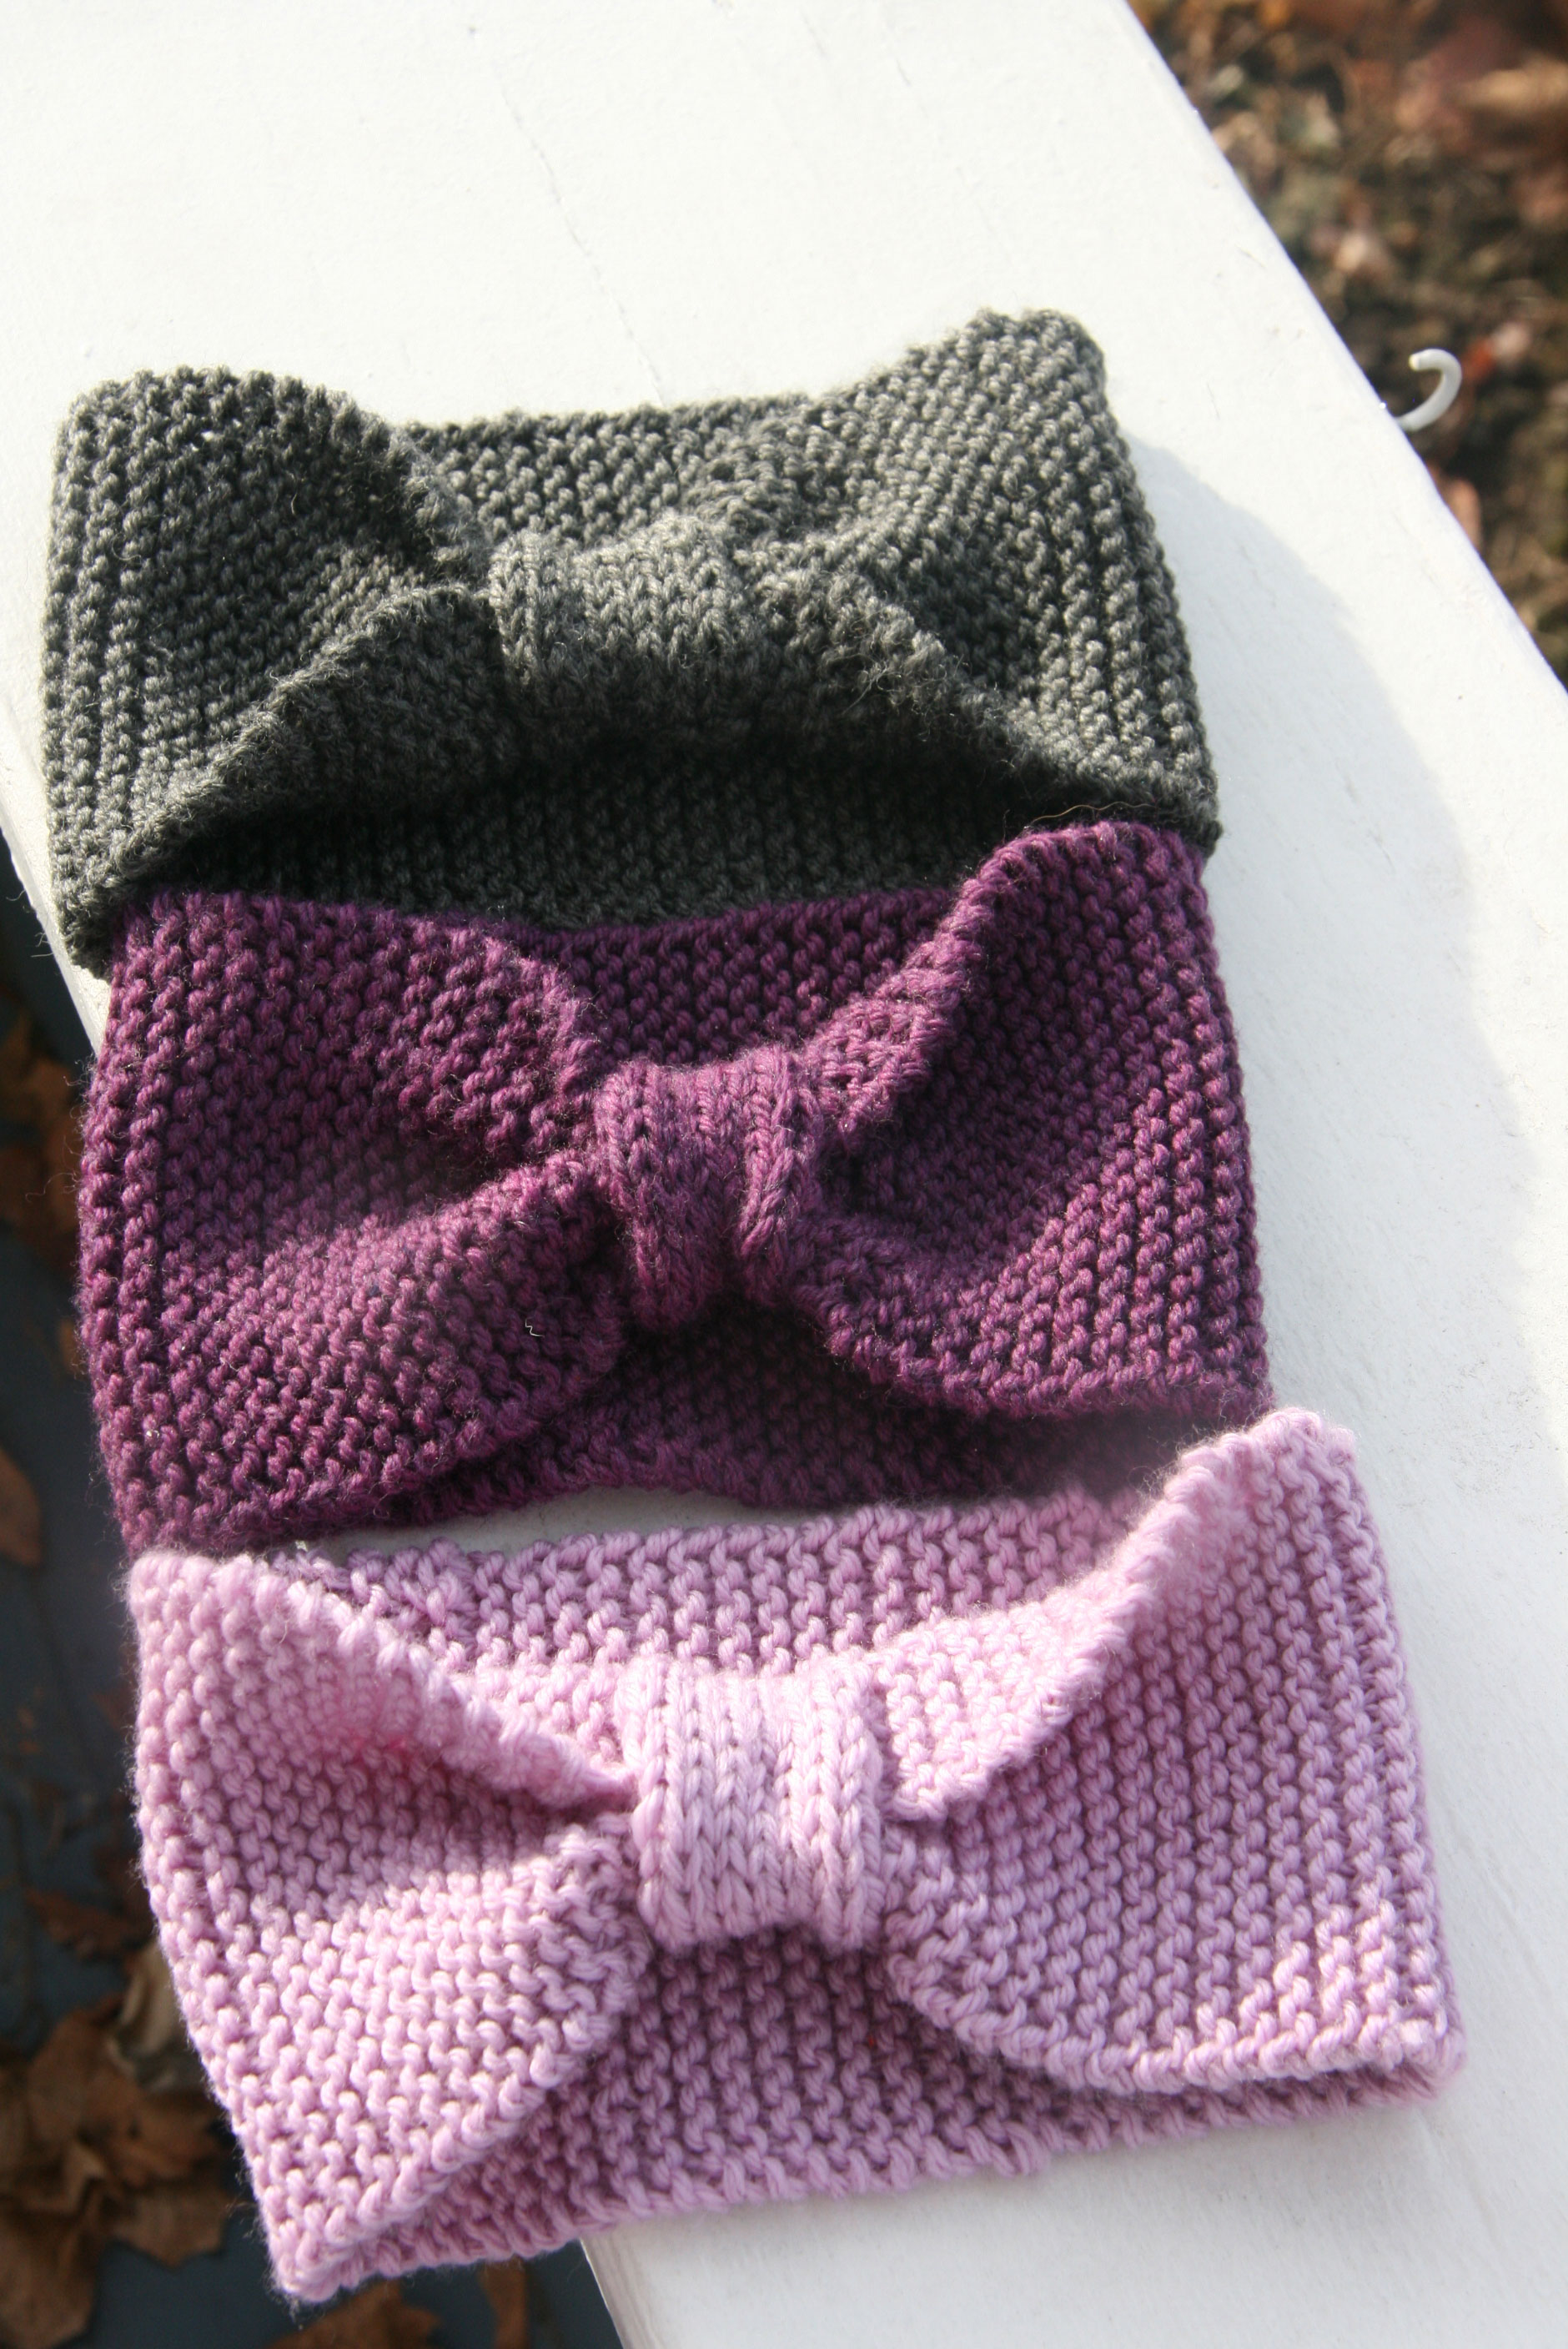 Knitted Baby Headband Pattern Easy : Headbands? Head Wraps? Also known as Earwarmers ...